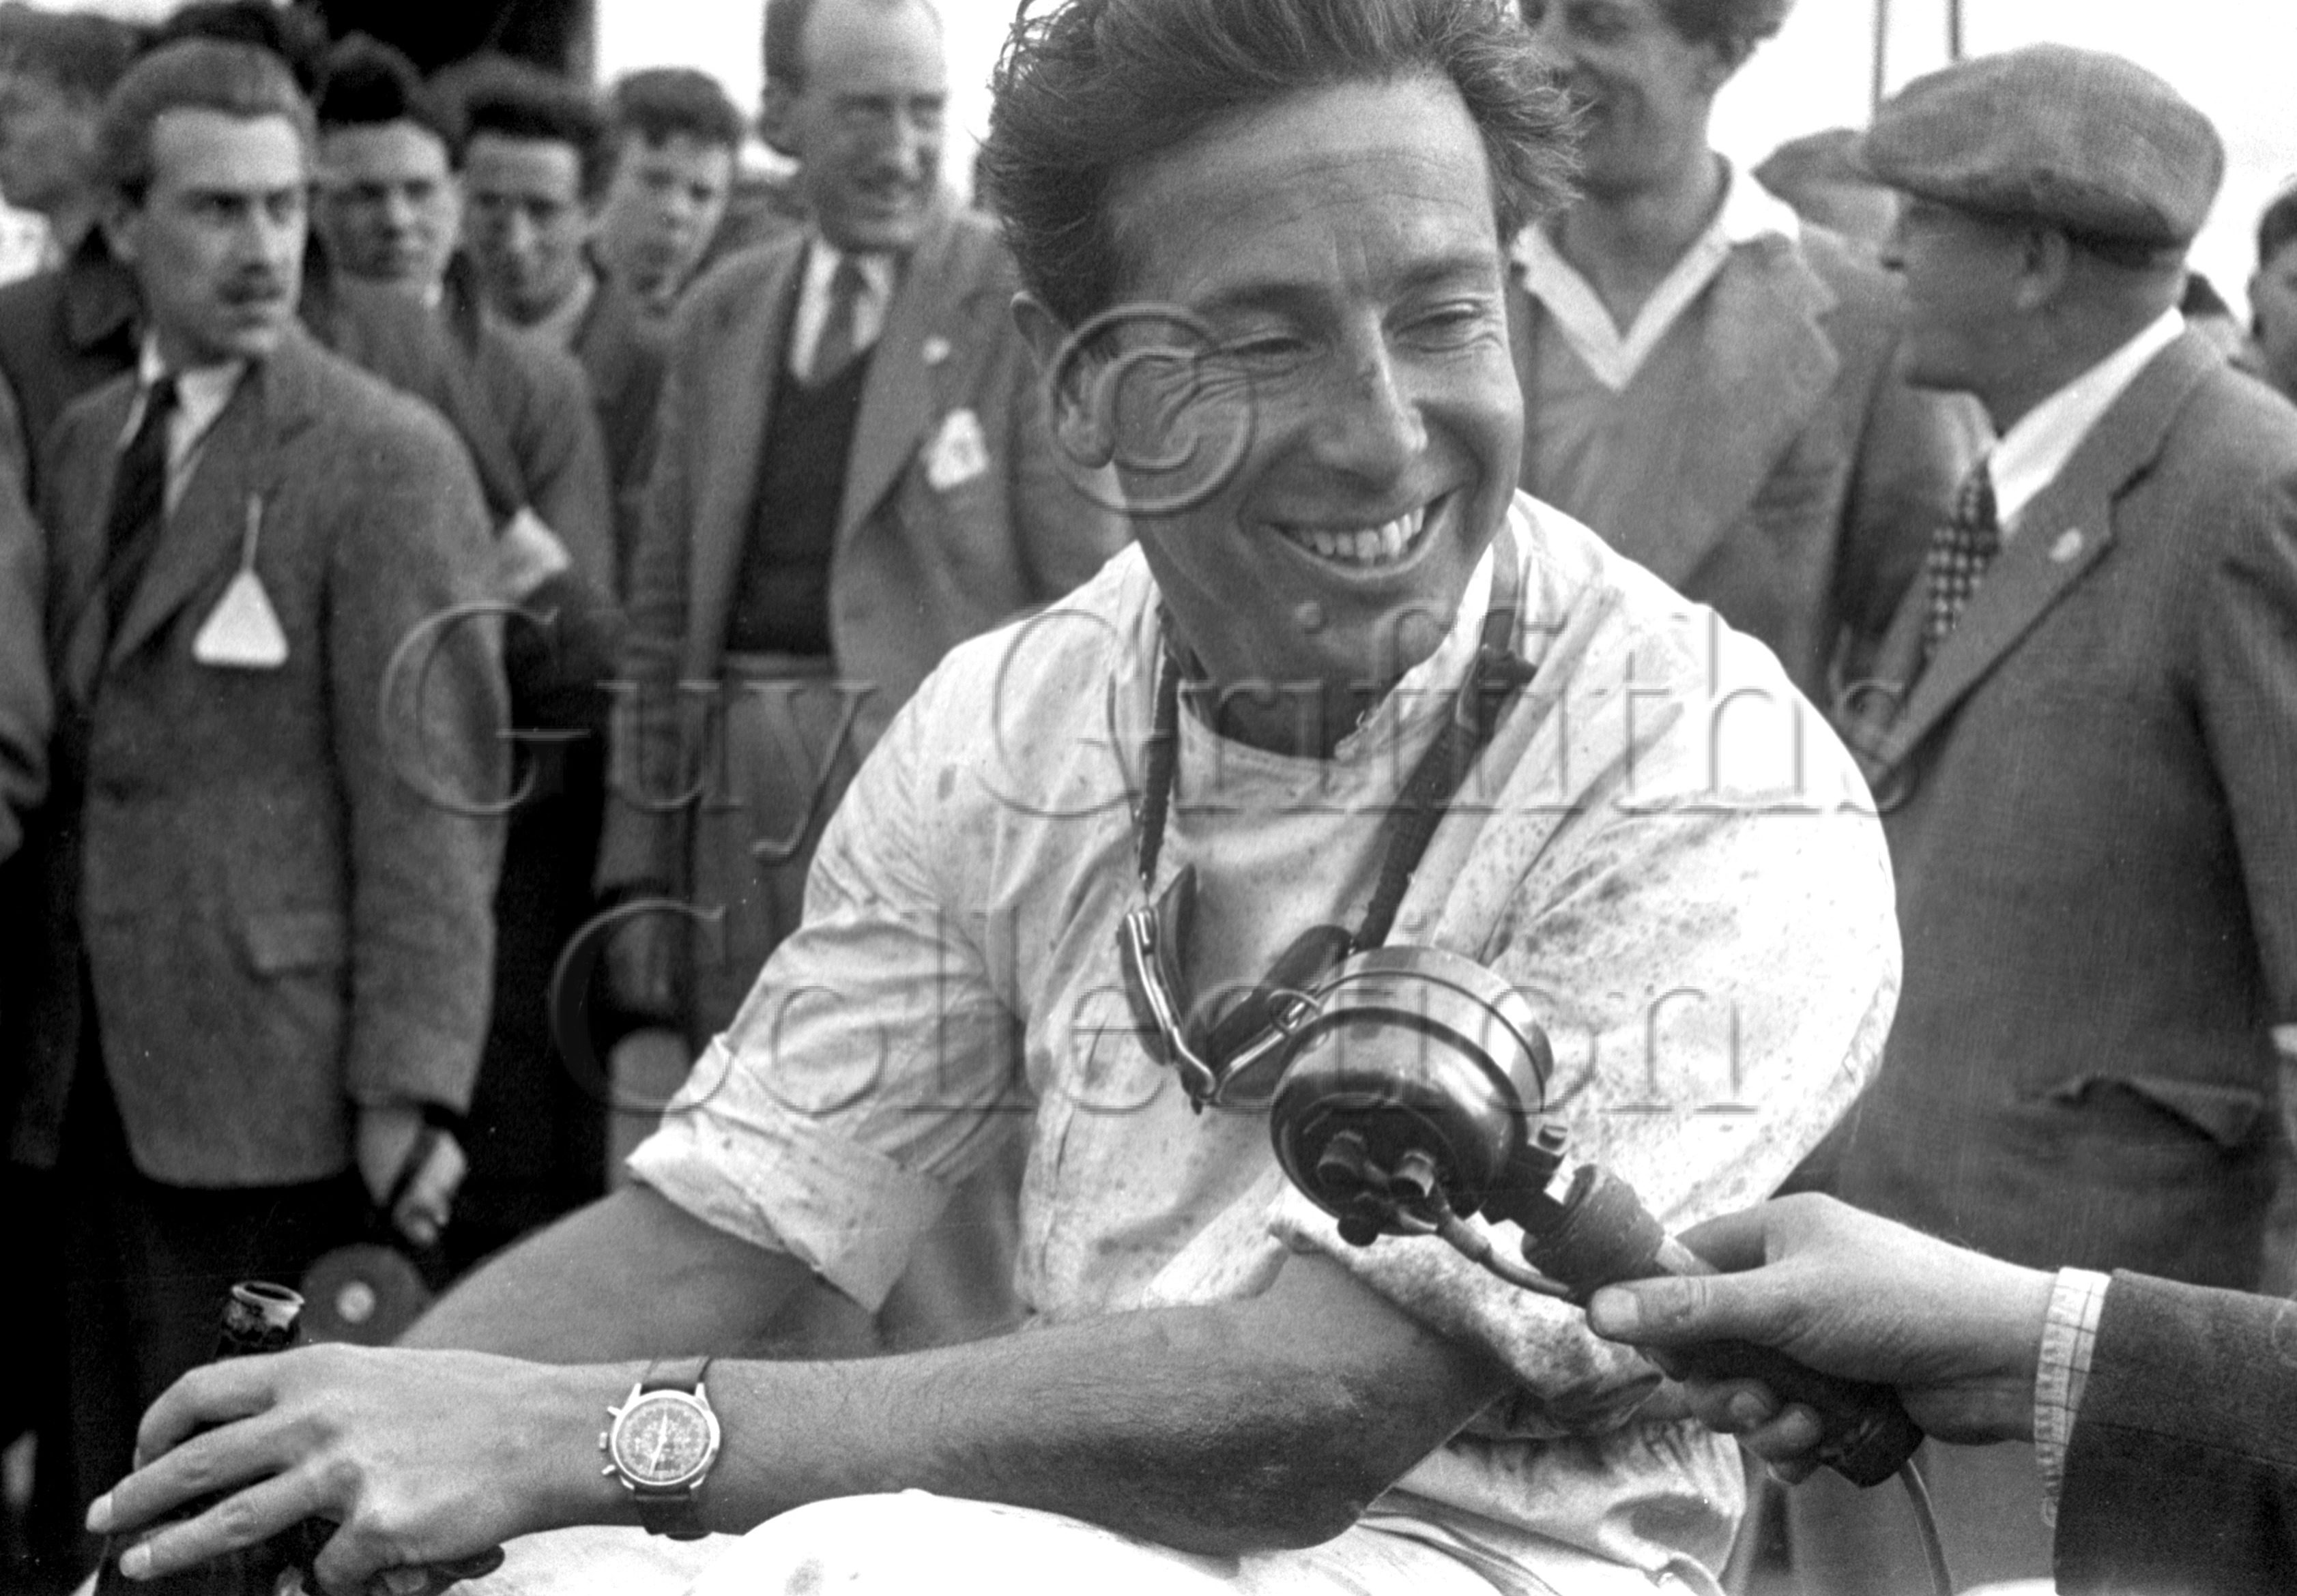 54-343–L-Macklin–HWM–Silverstone–10-05-1952–.jpg - The Guy Griffiths Collection